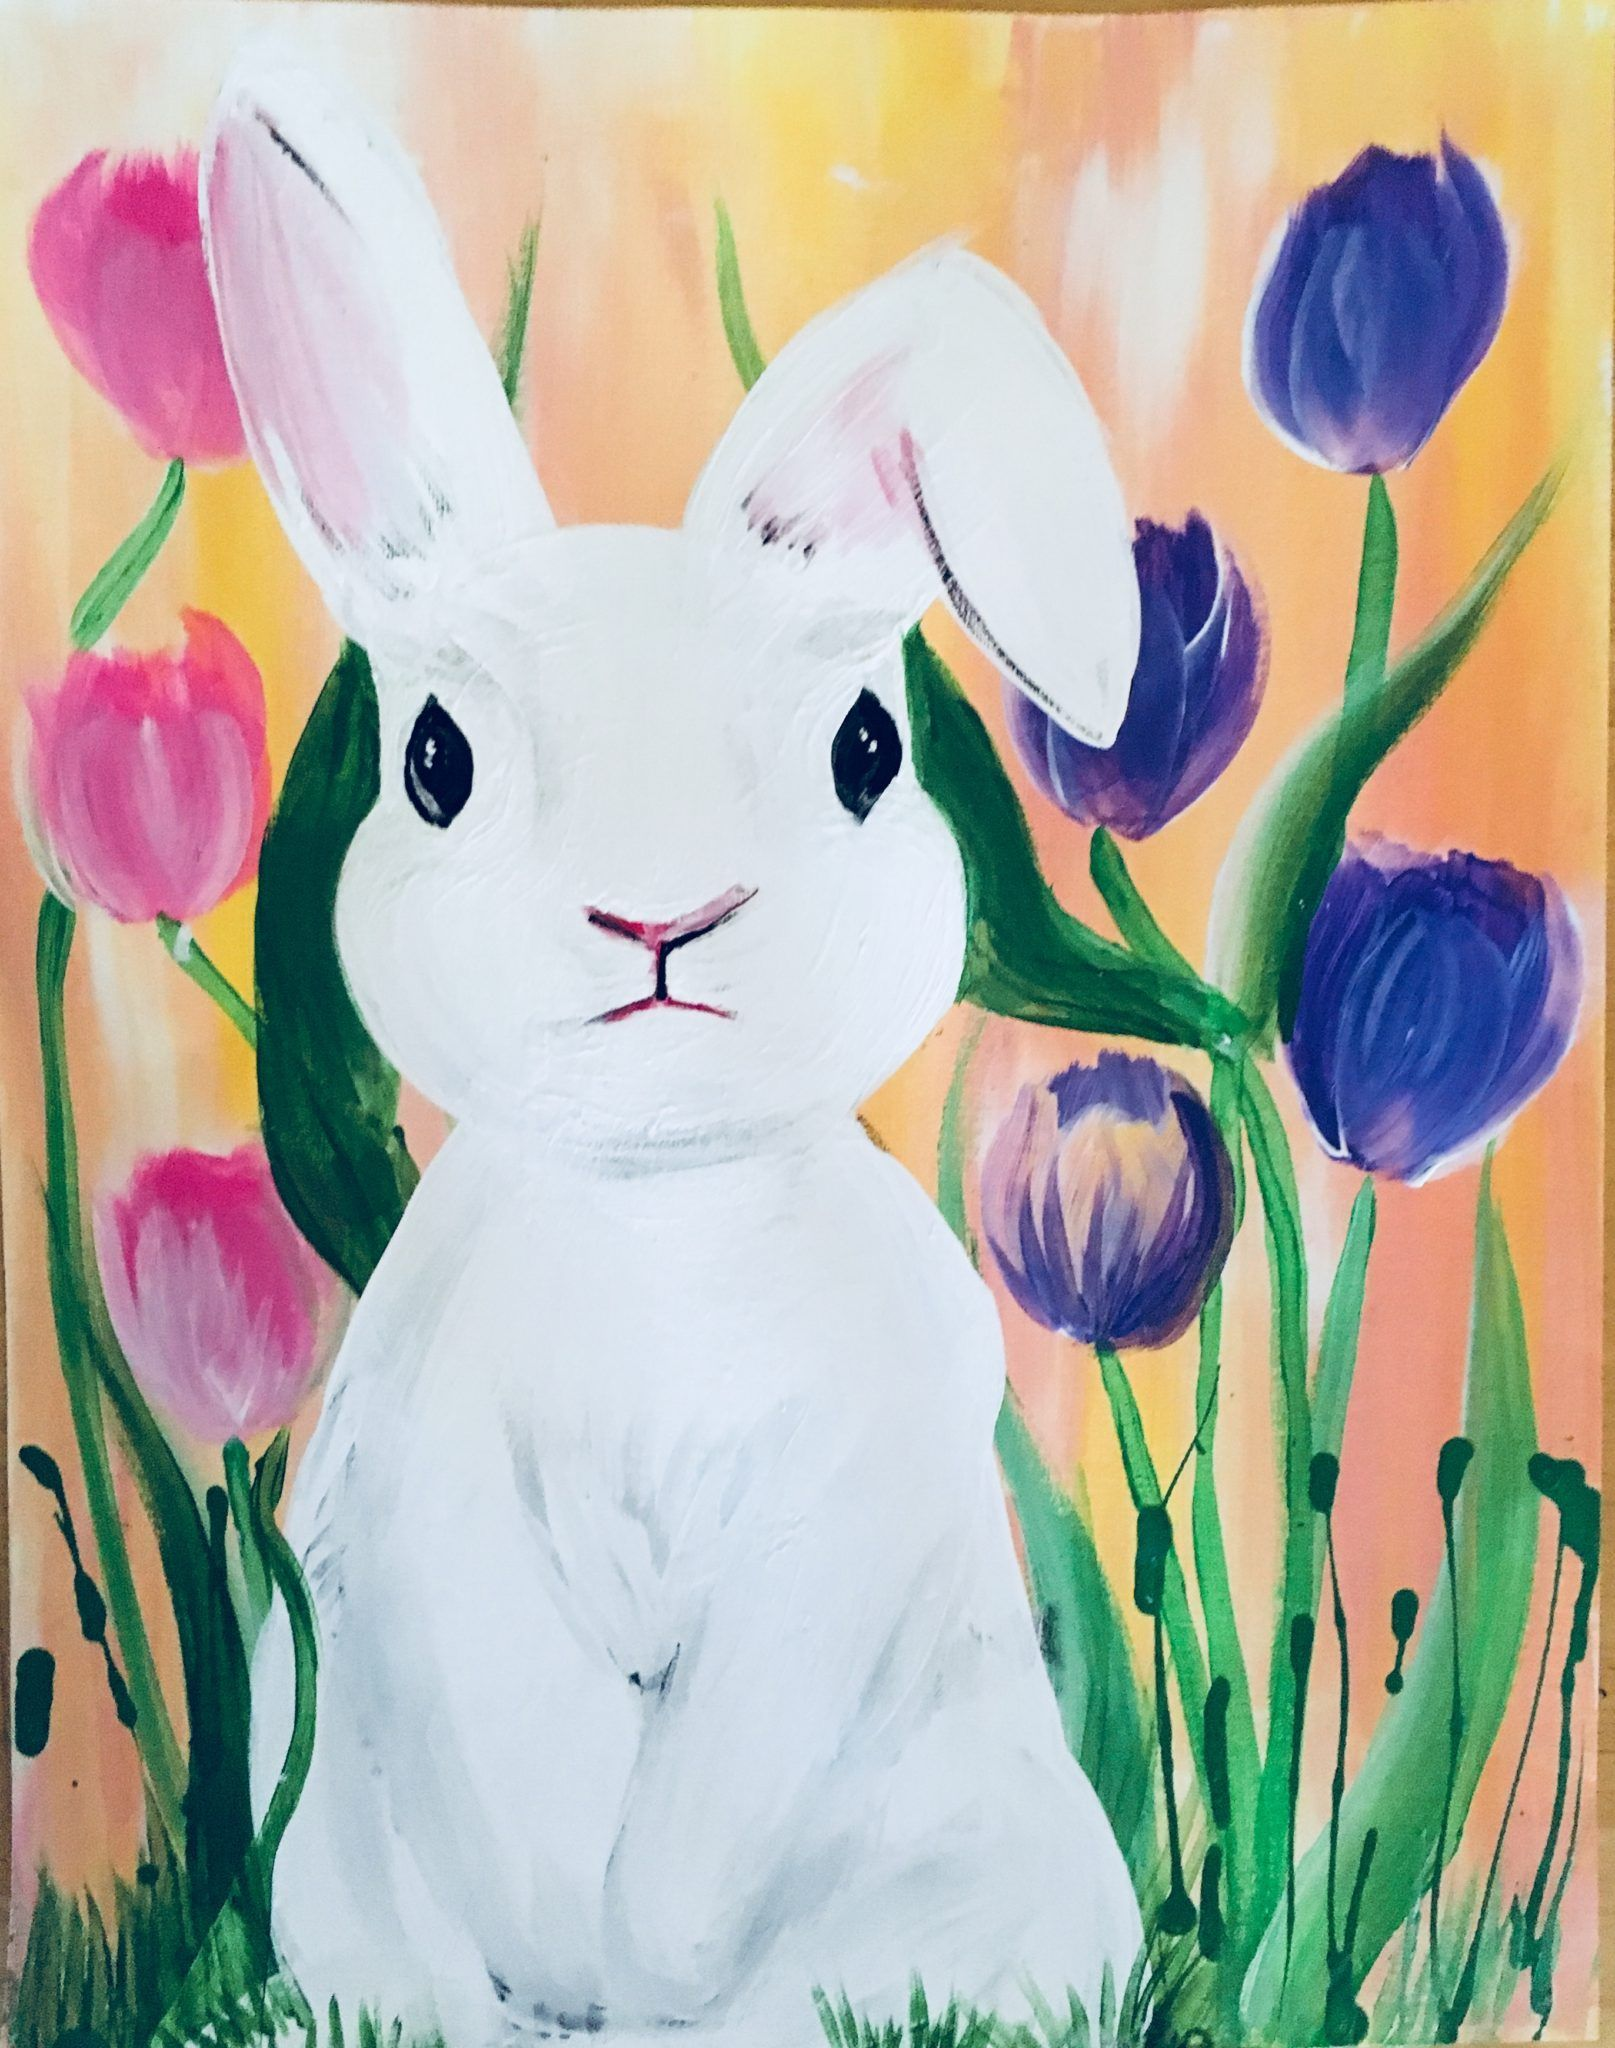 How To Paint A Rabbit : paint, rabbit, Easter, Canvas, Painting, Bunny, Silhouette, Acrylic, Tutorial, Projects,, Painting,, Paintings